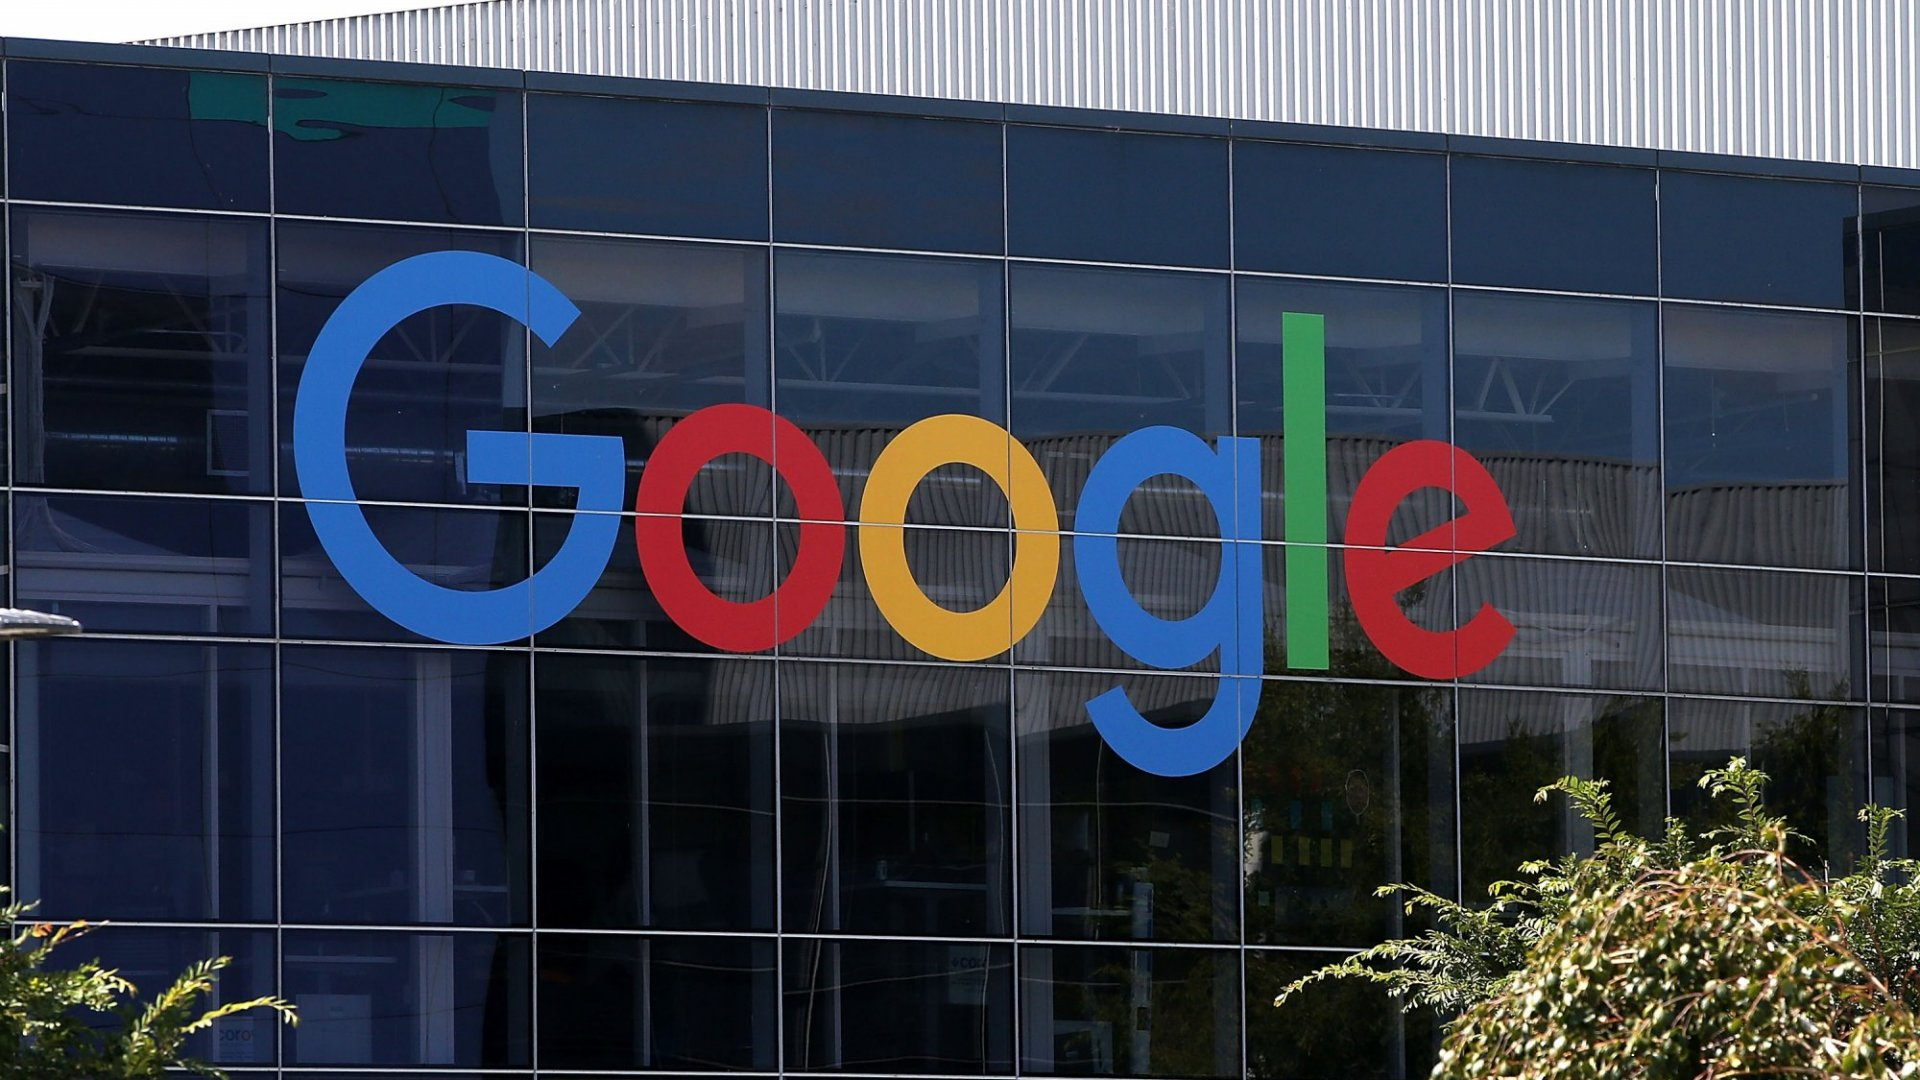 Google Used a Curious Strategy to Recruit Employees With a Hard-to-Find Personality Trait